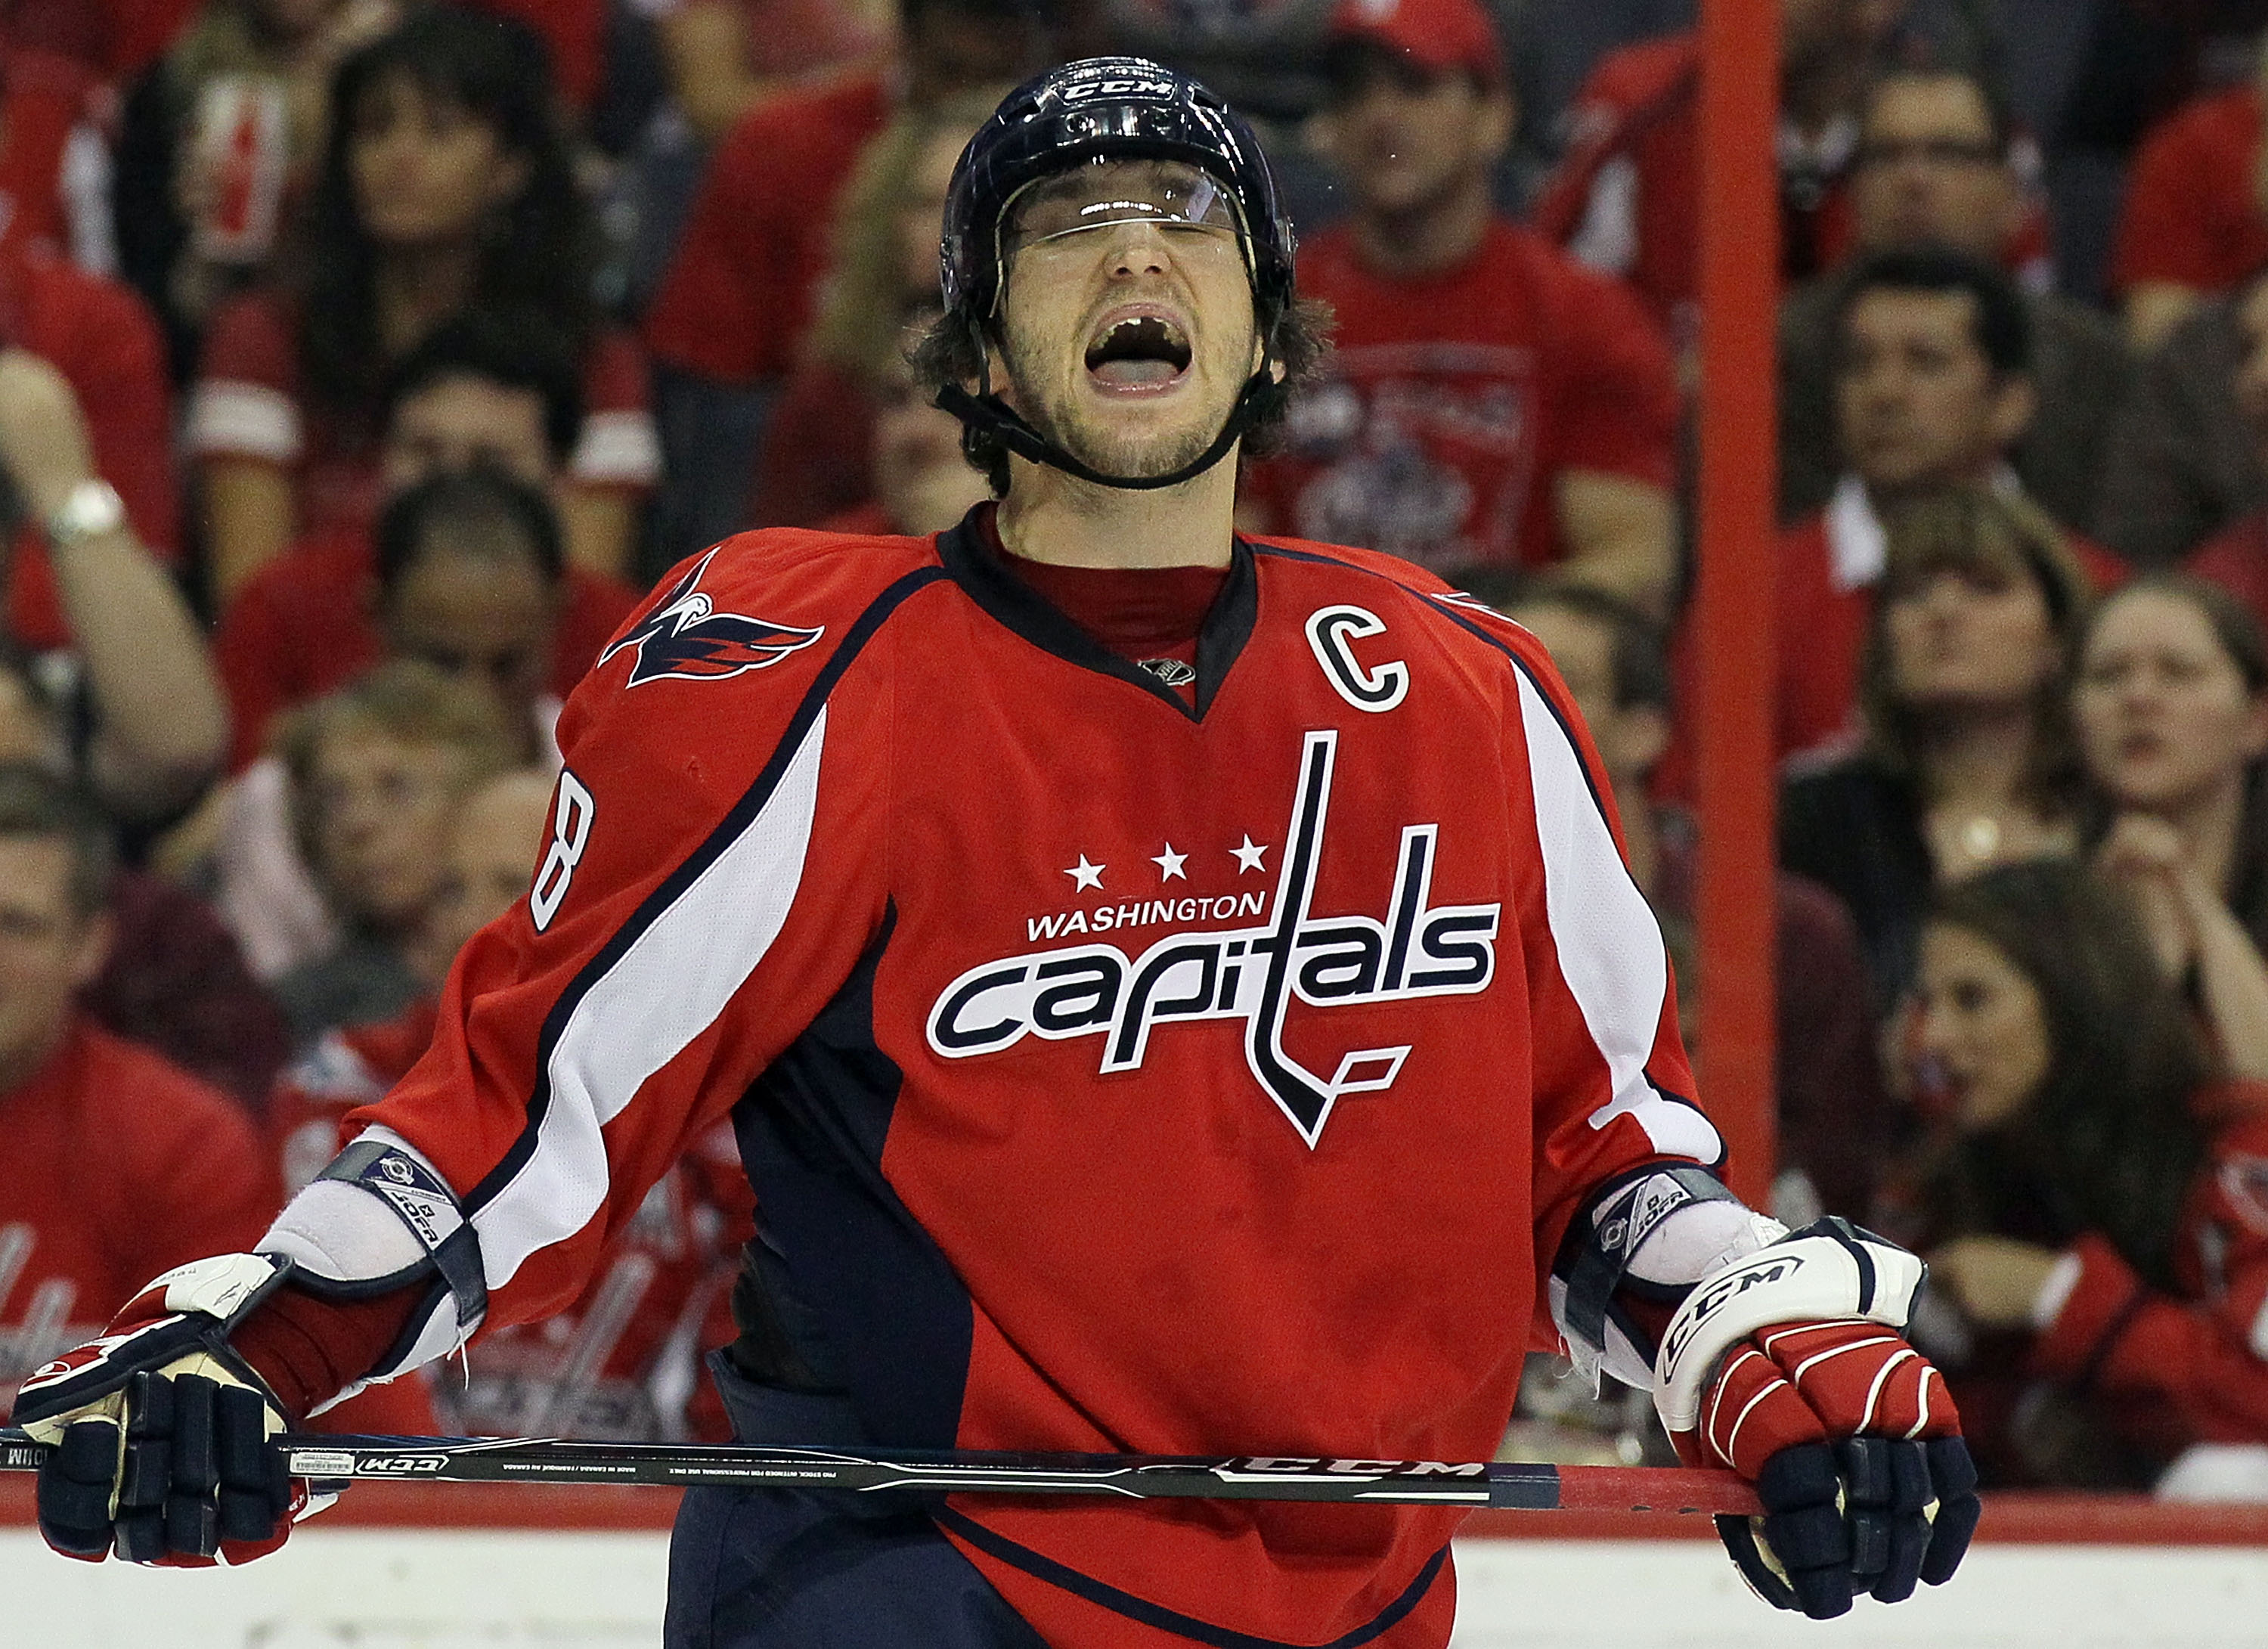 WASHINGTON DC, DC - APRIL 23: Alex Ovechkin #8 of the Washington Capitals reacts after missing a scoring chance in the third period against the Montreal Canadiens in Game Five of the Eastern Conference Quarterfinals during the 2010 NHL Stanley Cup Playoff